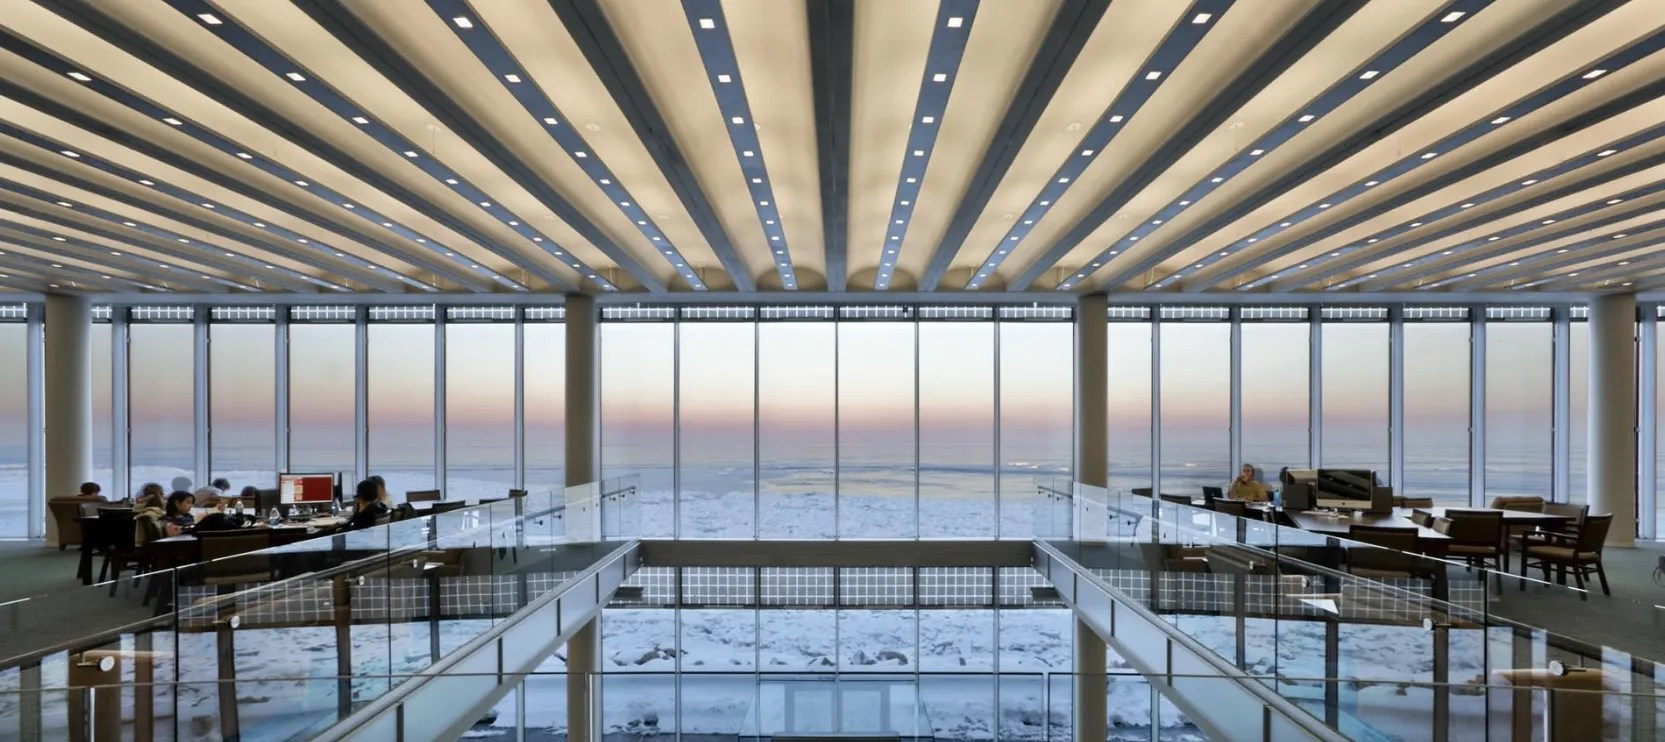 Built in 2007 by local firm Solomon Cordwell Buenz, the Richard J. Klarchek Library at Loyola University Chicago gives students unparalleled views of Lake Michigan.